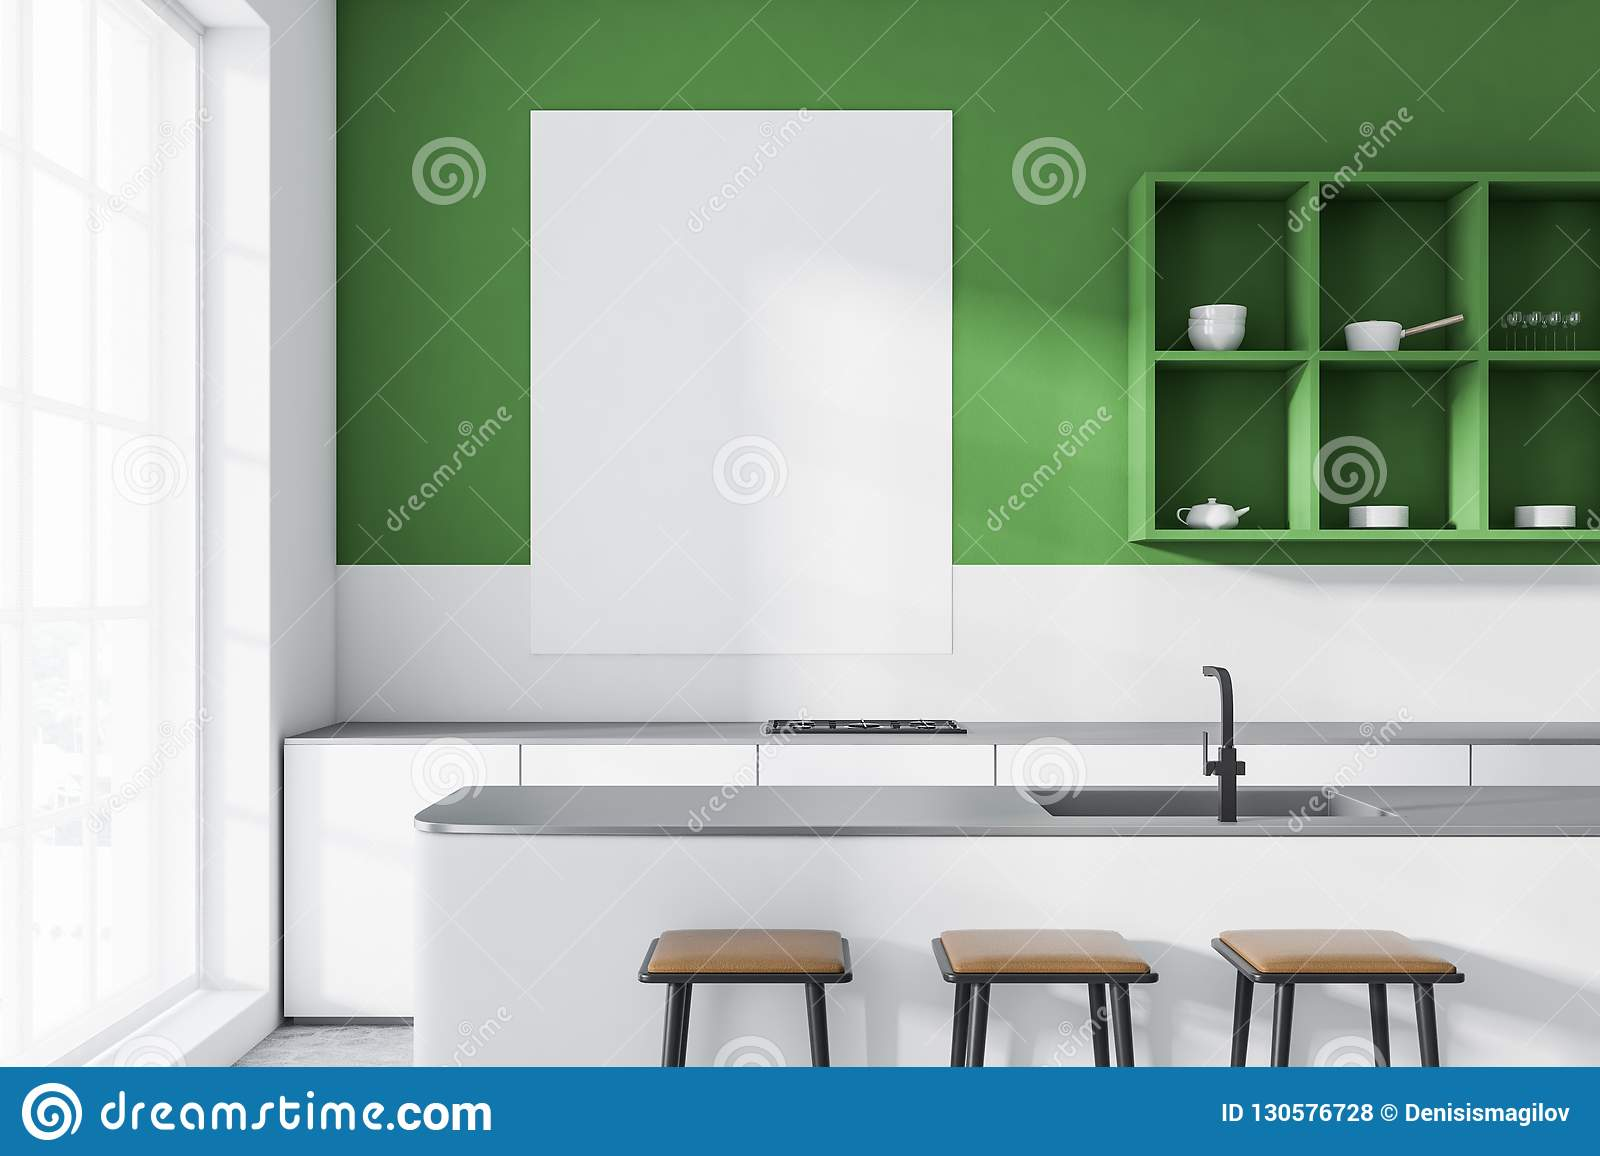 Green Kitchen With Bar And Shelves, Poster Stock